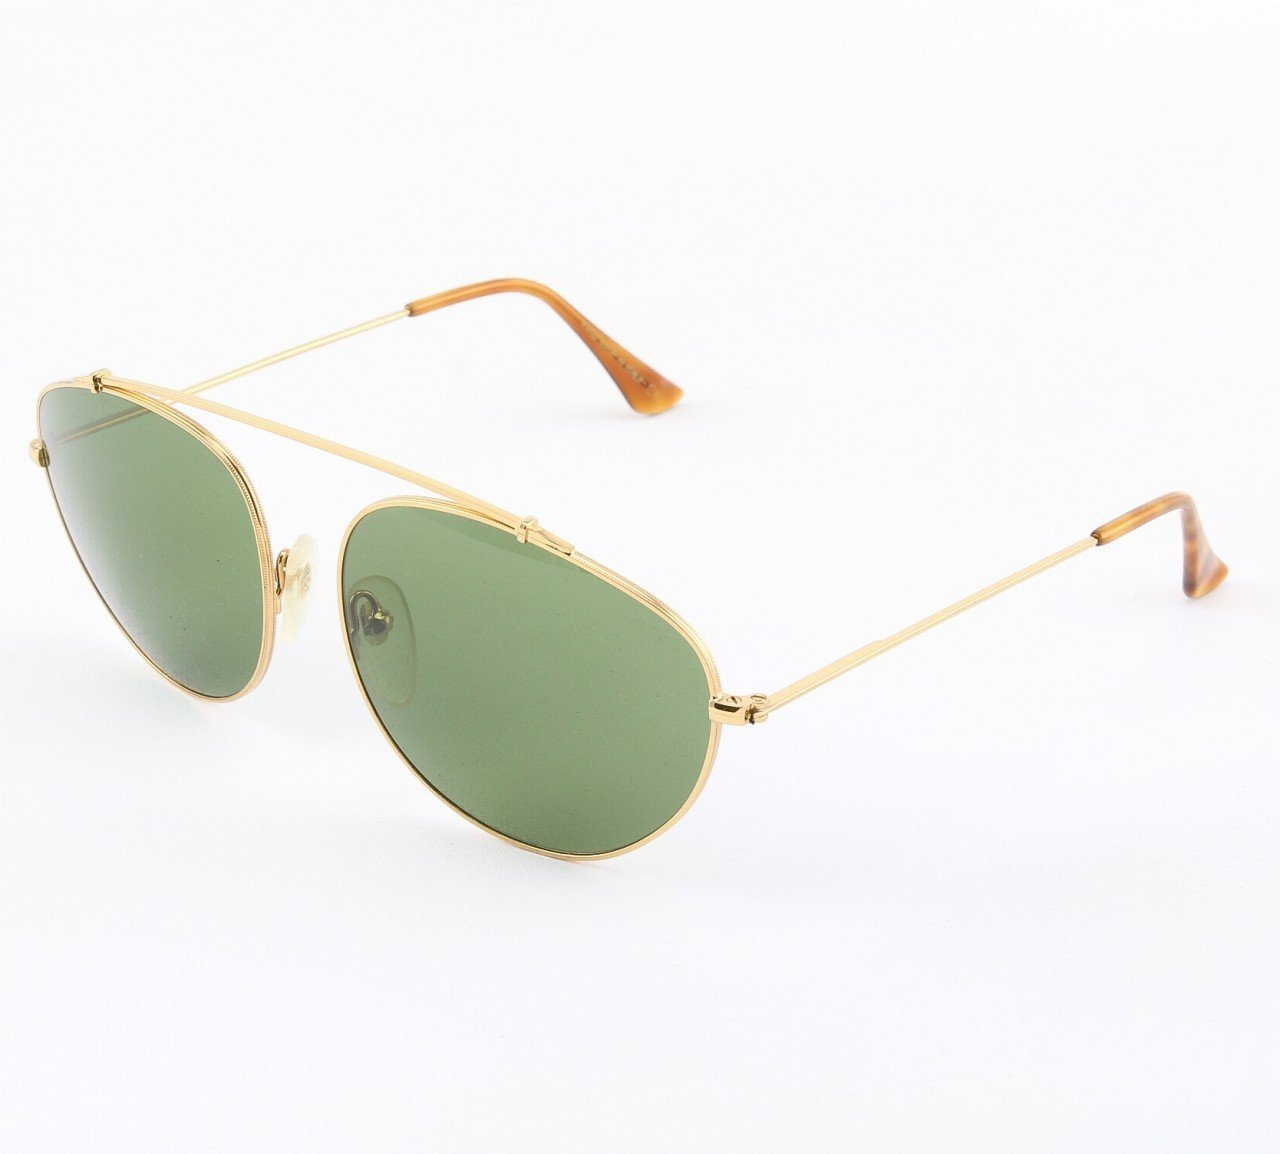 Super Leon 713/2M Sunglasses Havana with Green Zeiss Lenses by RETROSUPERFUTURE